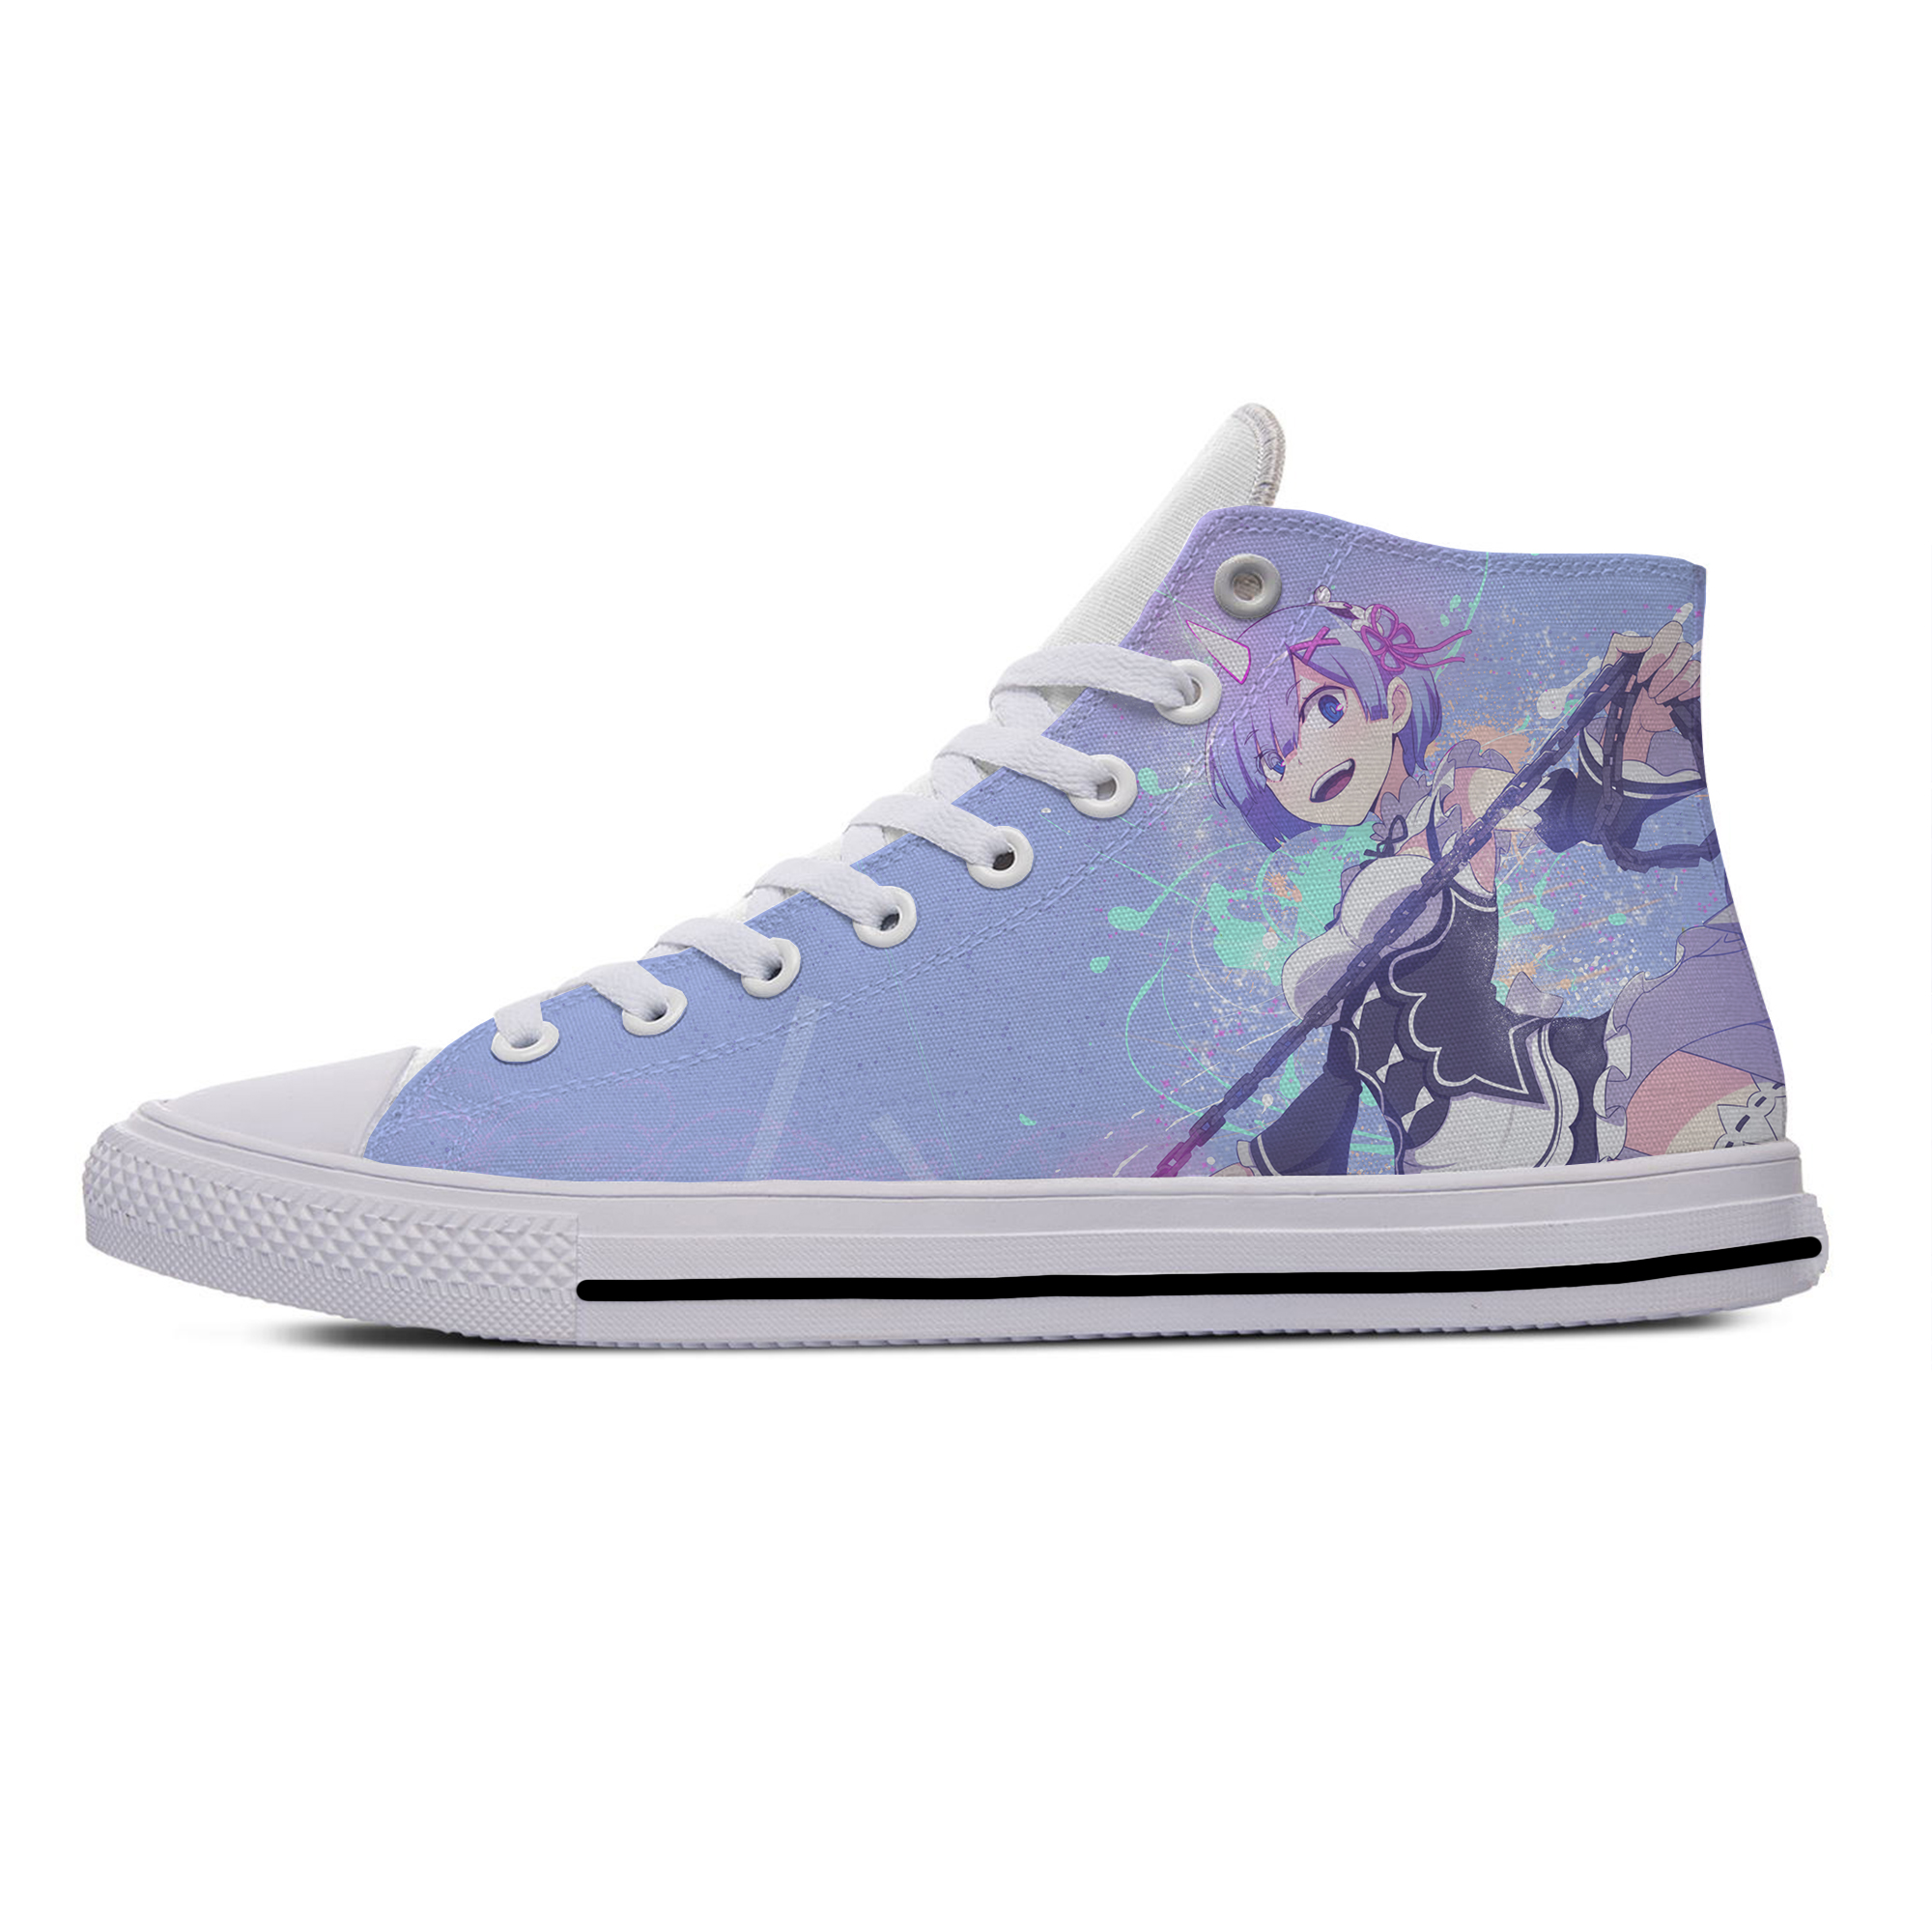 Anime Re Zero Rem Ram Funny Fashion Popular Vogue Casual Canvas Shoes High Top Harajuku Breathable 3D Printed Men Women Sneaker